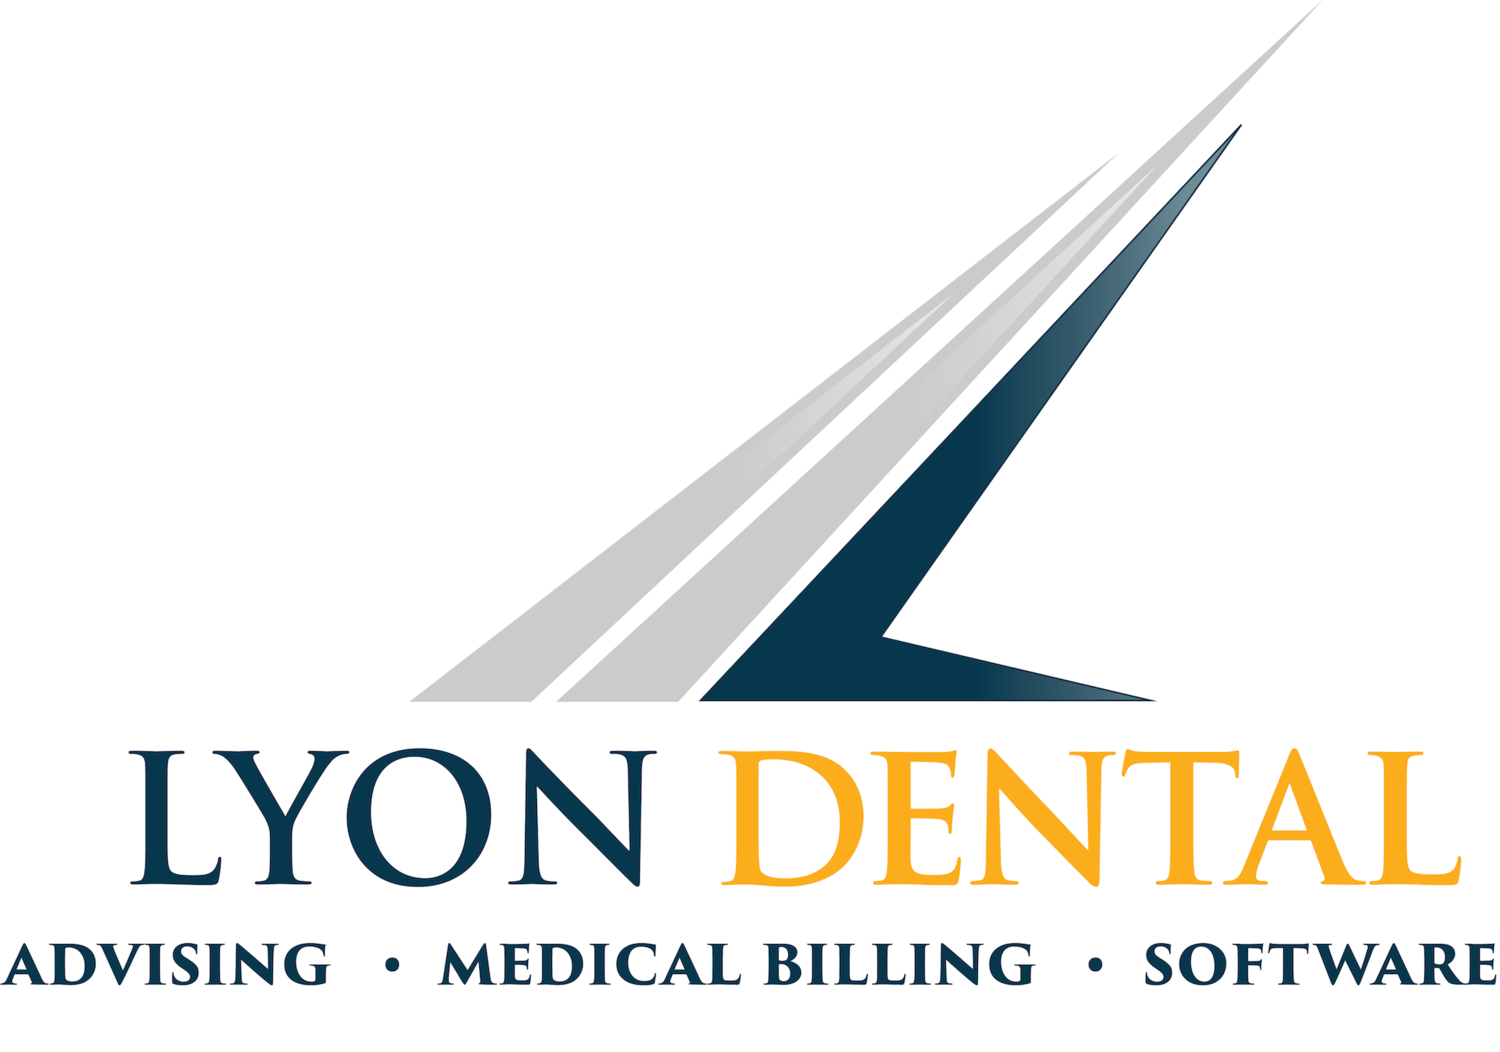 Lyon Dental